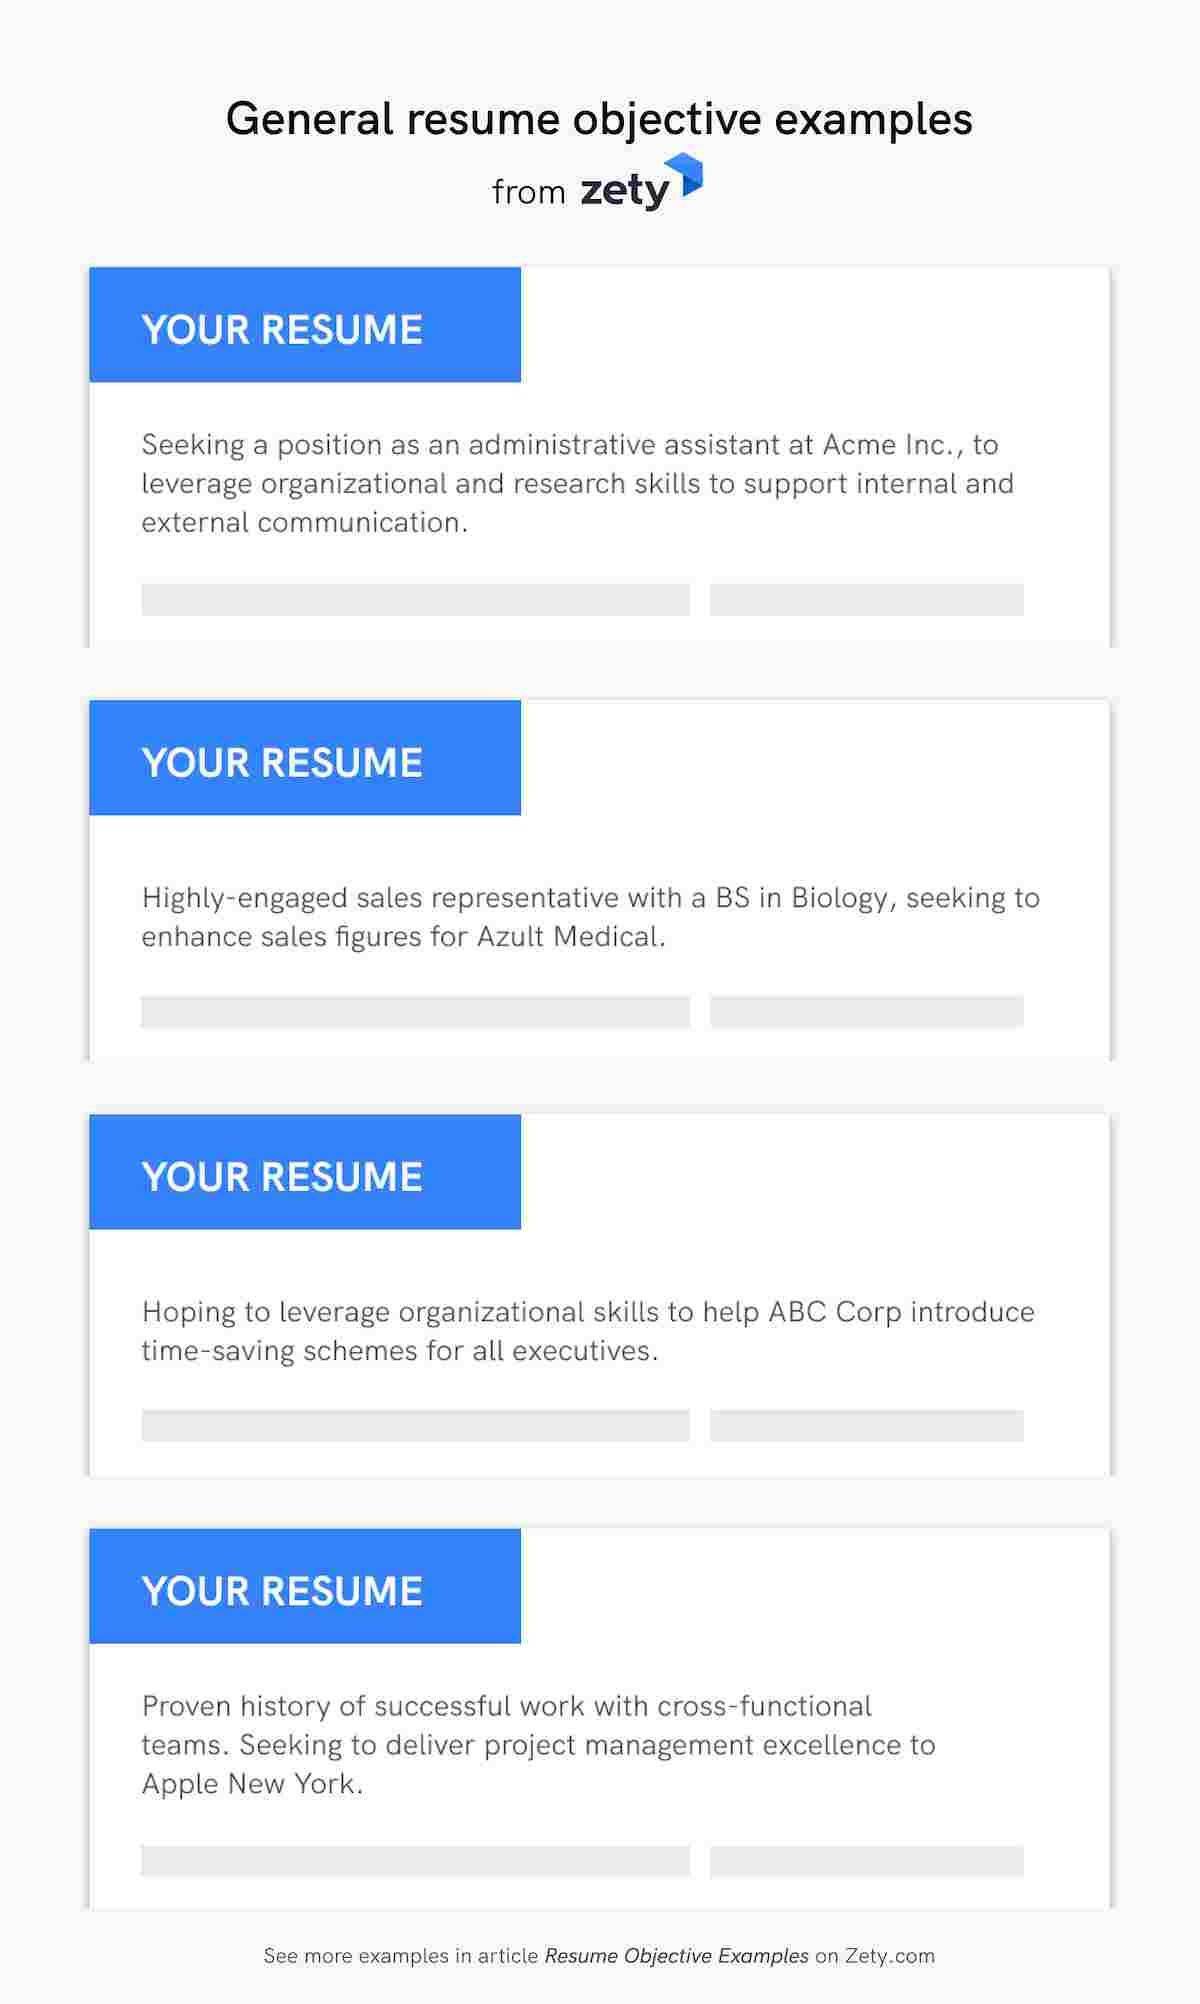 resume objective examples career objectives for all jobs experienced general ku builder Resume Career Objective For Resume For Experienced